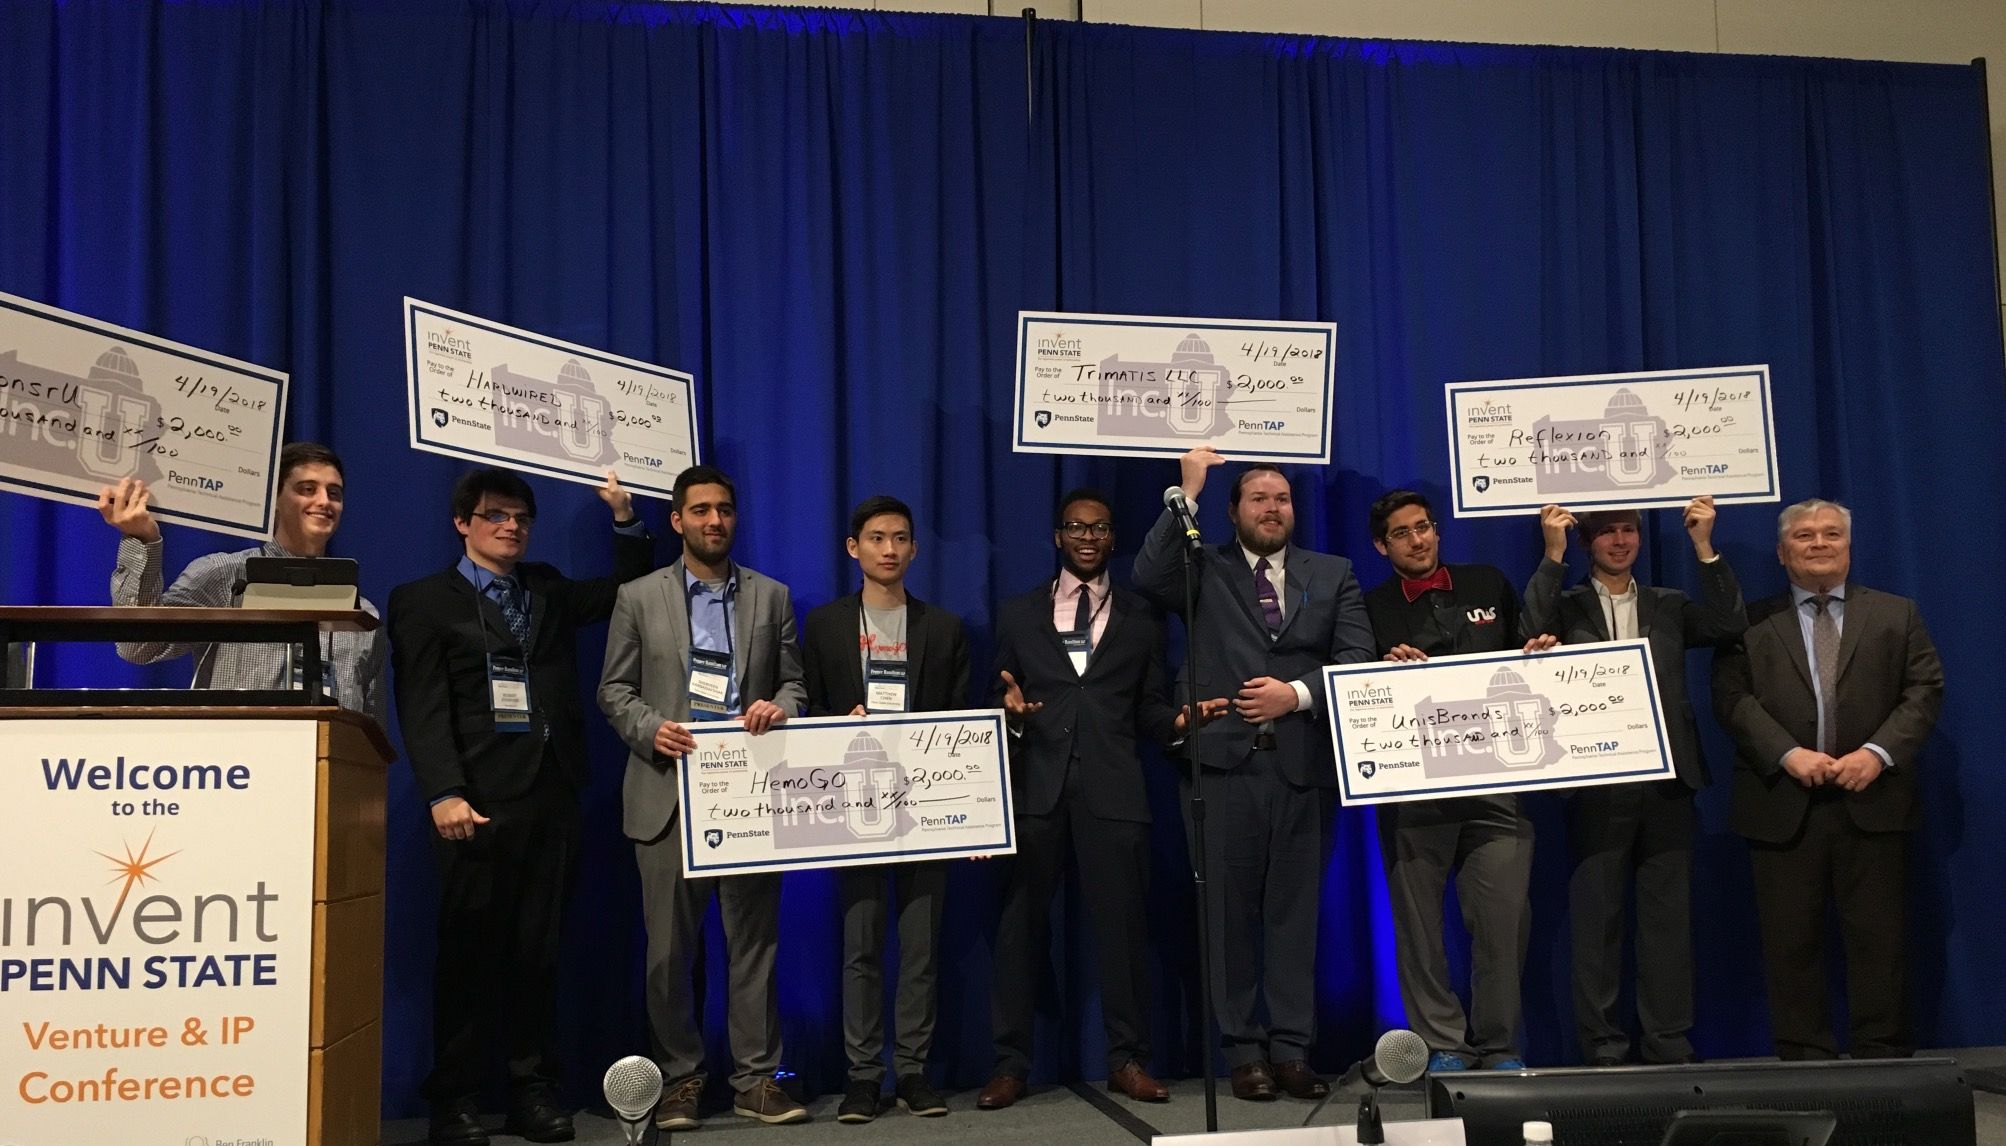 Moichor, formerly known as HemoGo, won a $2,000 prize at the 2018 Penn State Venture and IP Conference